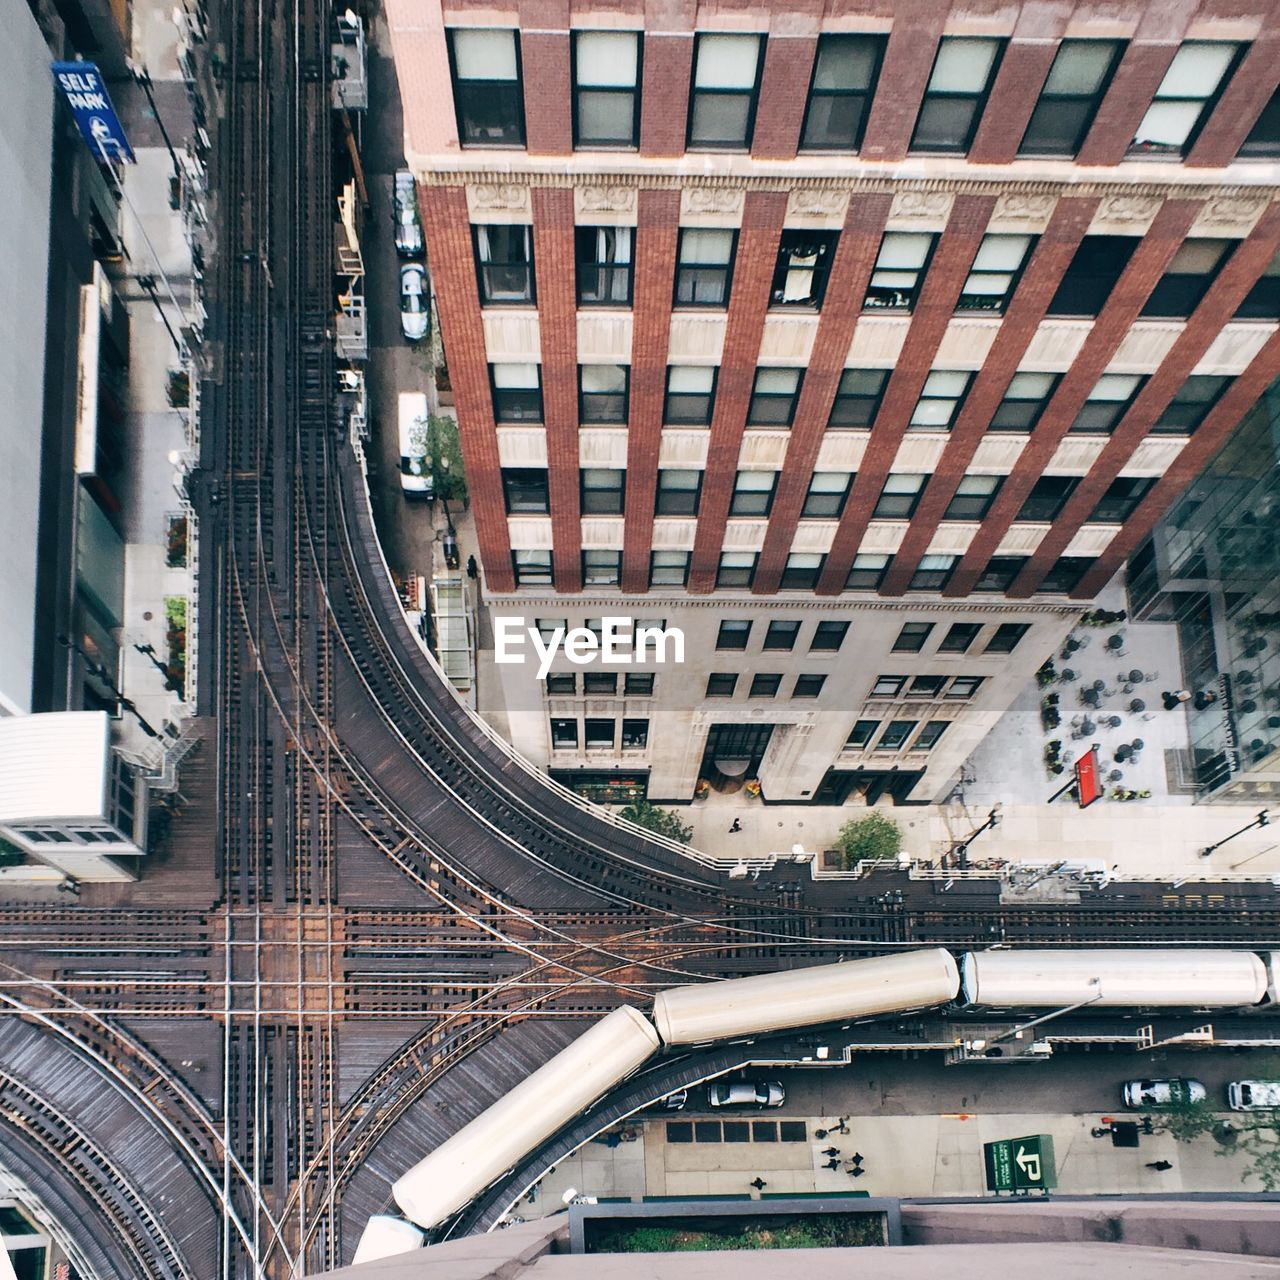 High Angle View Of Railroad Tracks Amidst Buildings